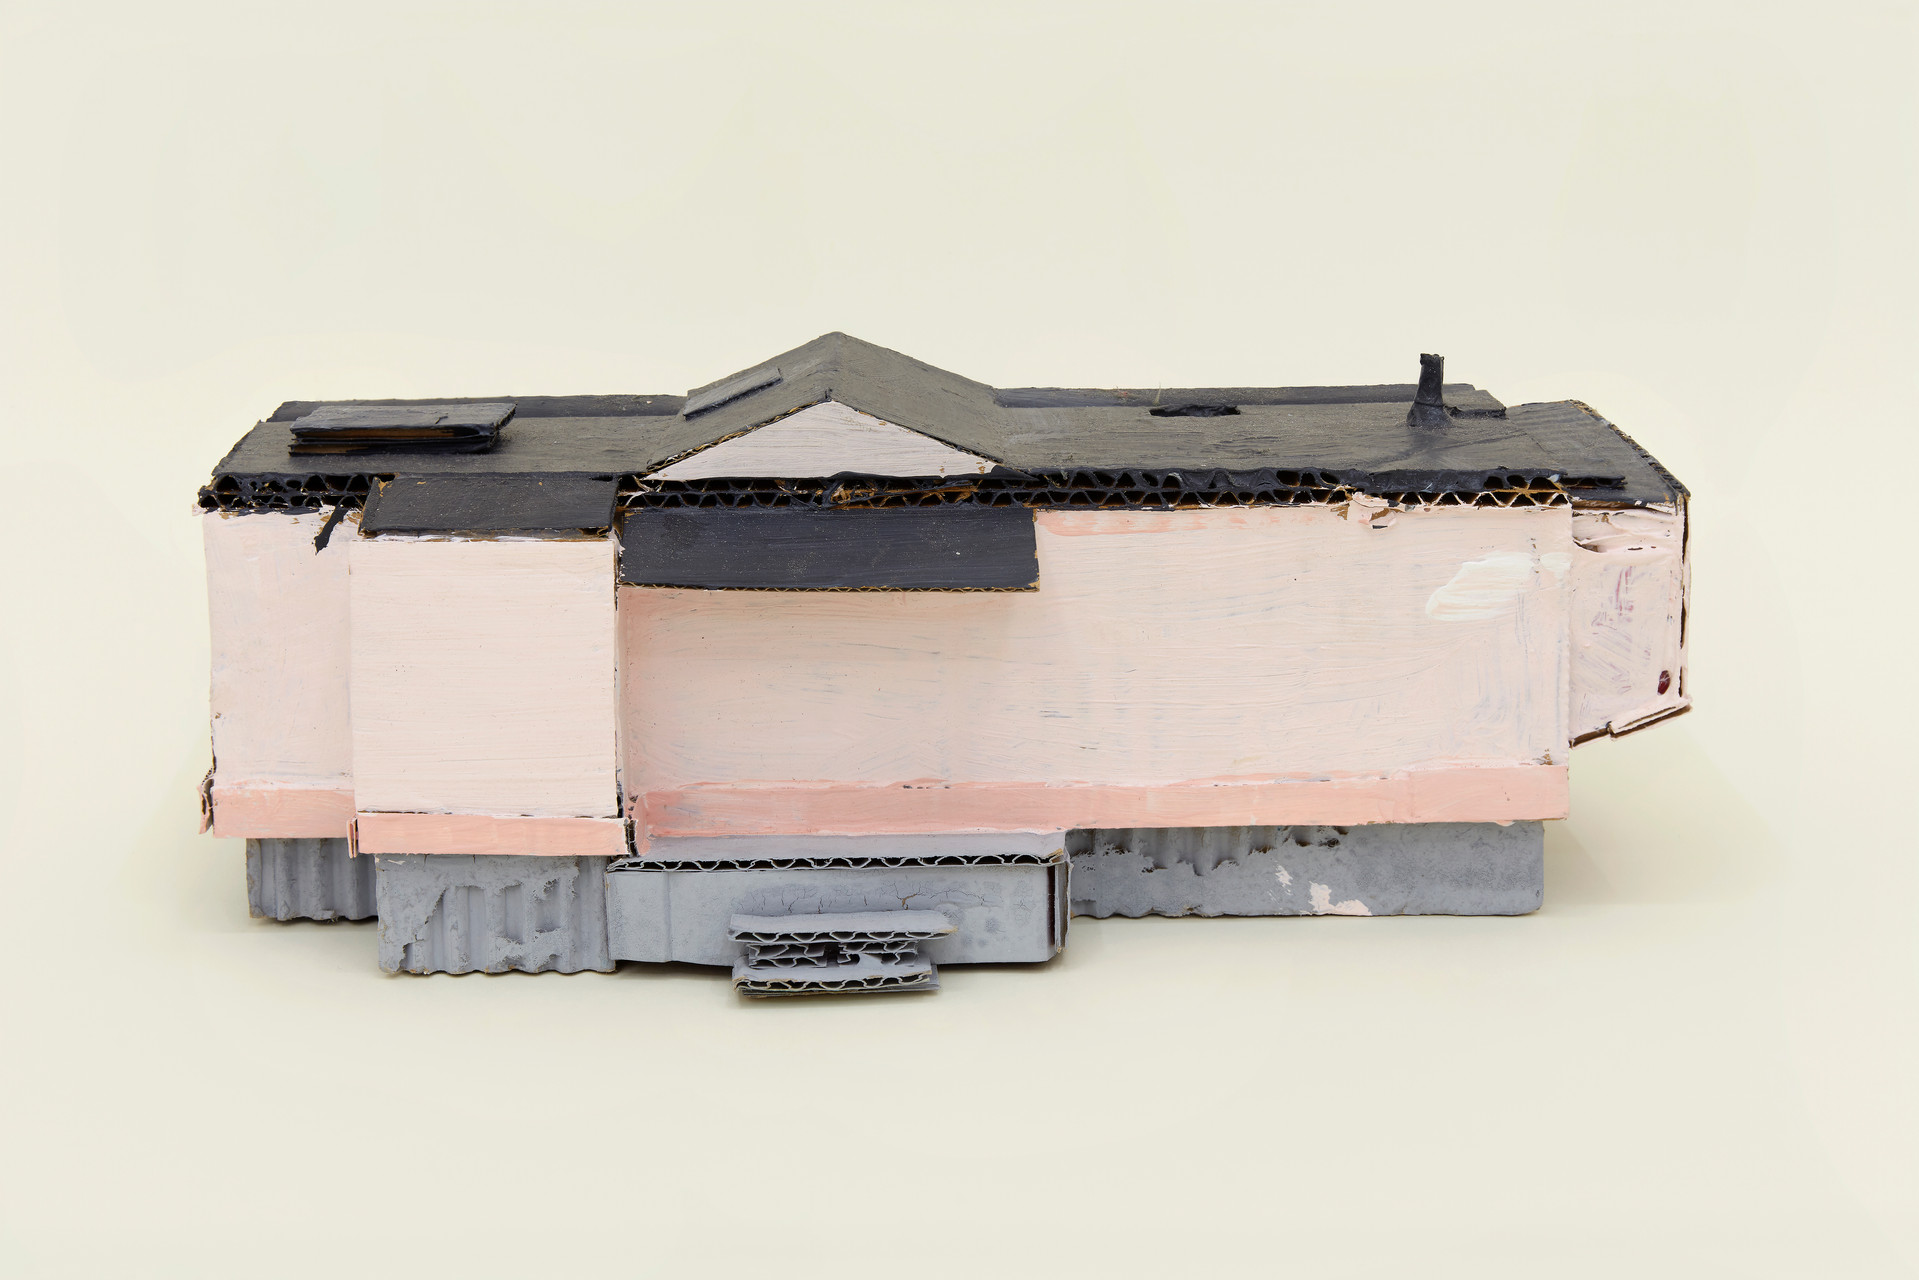 Leo Gabin  Untitled (Real Estate), 2017 – 2019  Acrylic on cardboard  10 x 4 x 3 1/2 inches